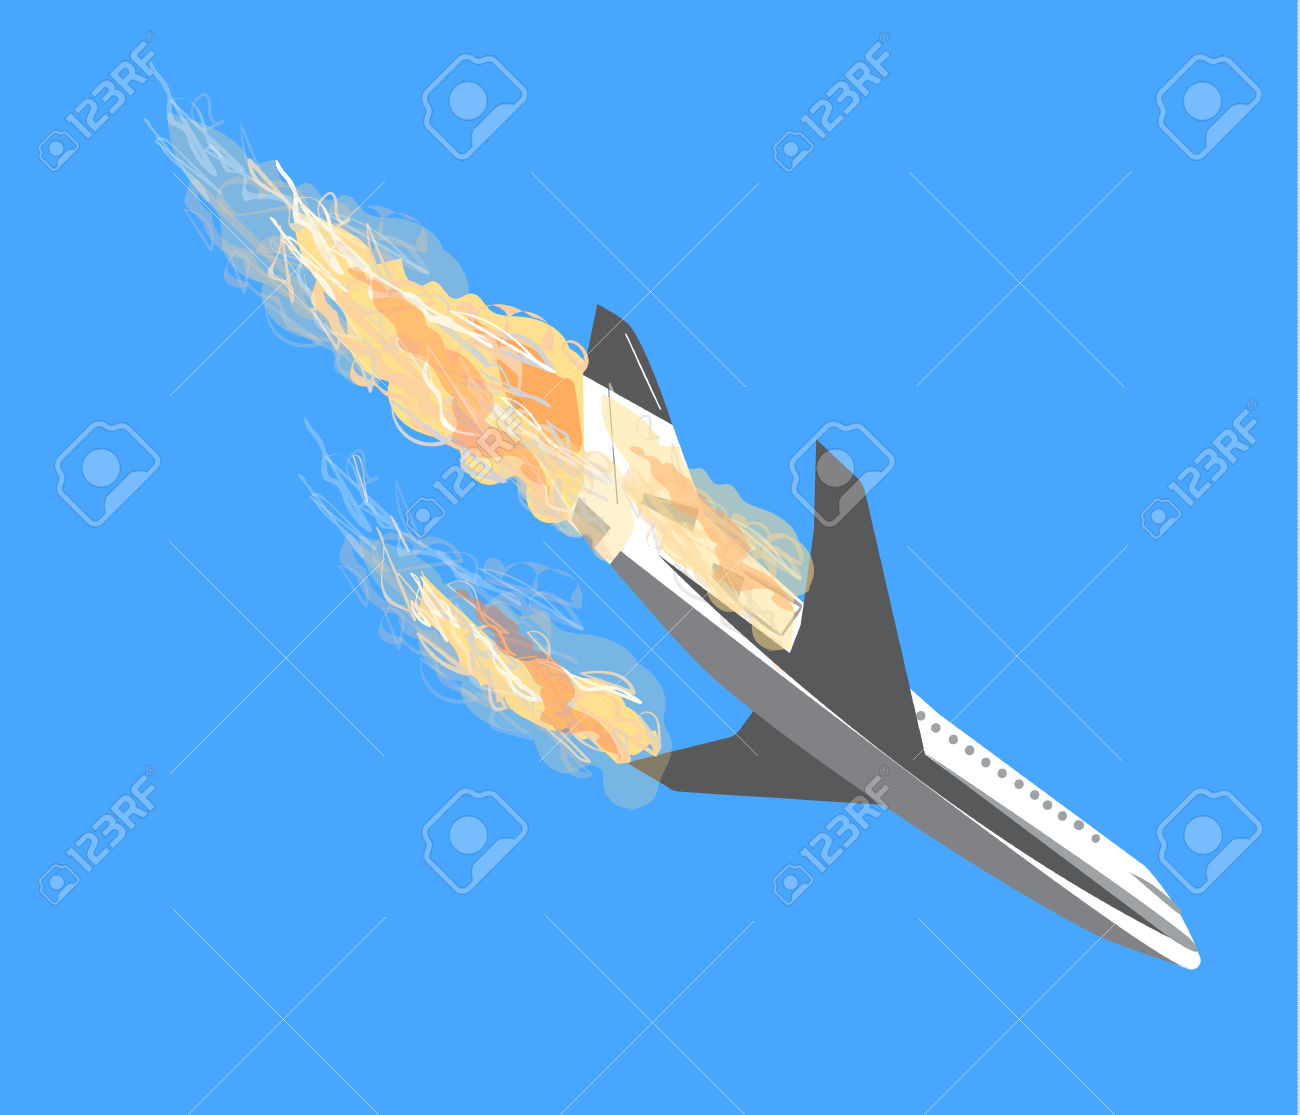 Crashing military plane clipart.